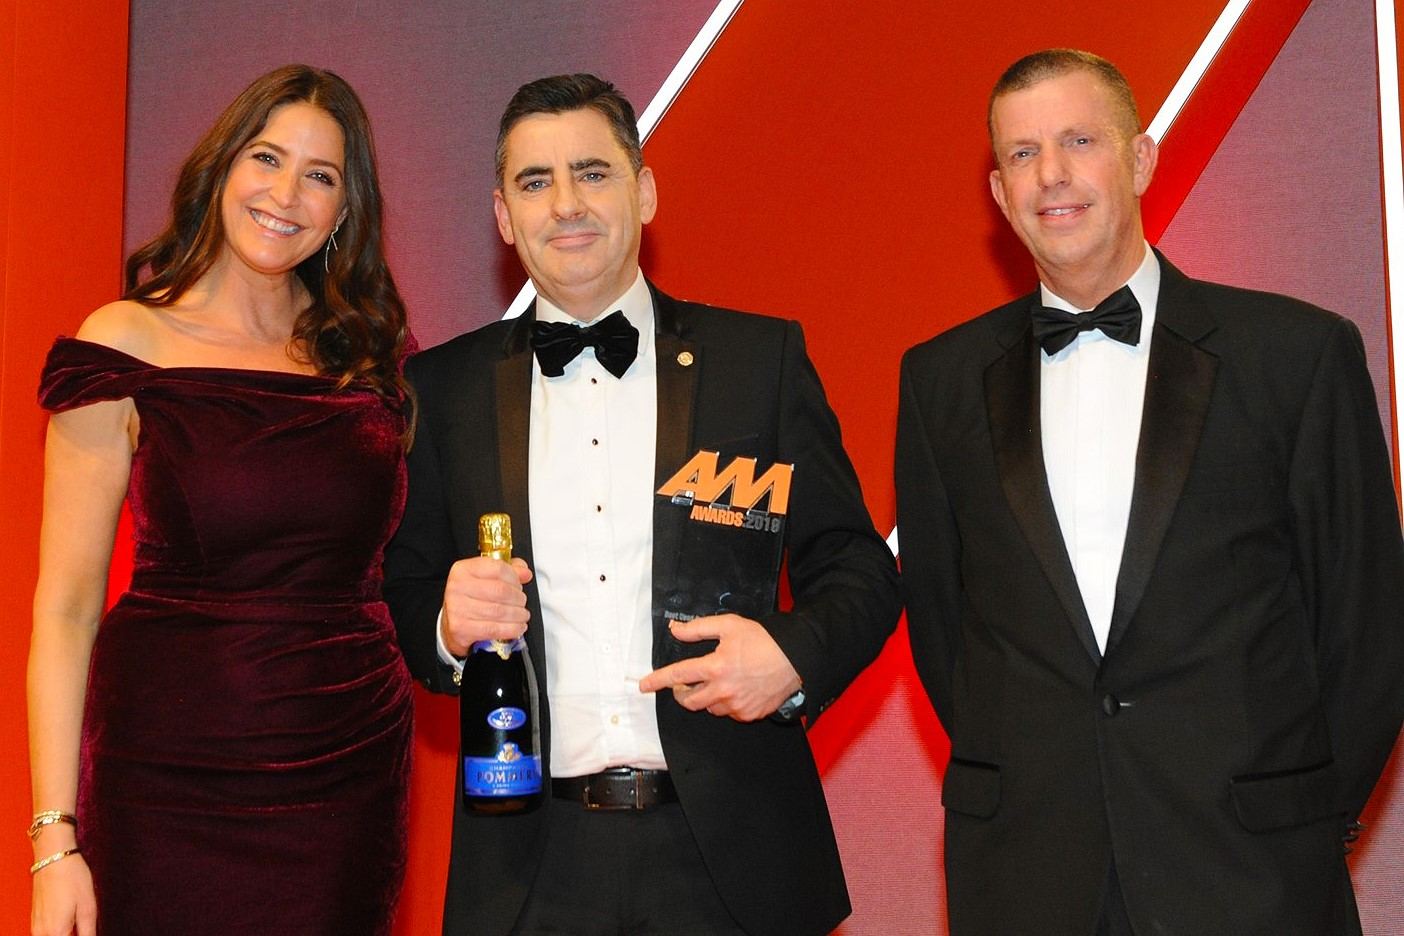 Russell Borrie, group franchise  director, Arnold Clark Automobiles,  accepts the award from Martin Ward,  managing director, Autoclenz, right and host Lisa Snowdon, left